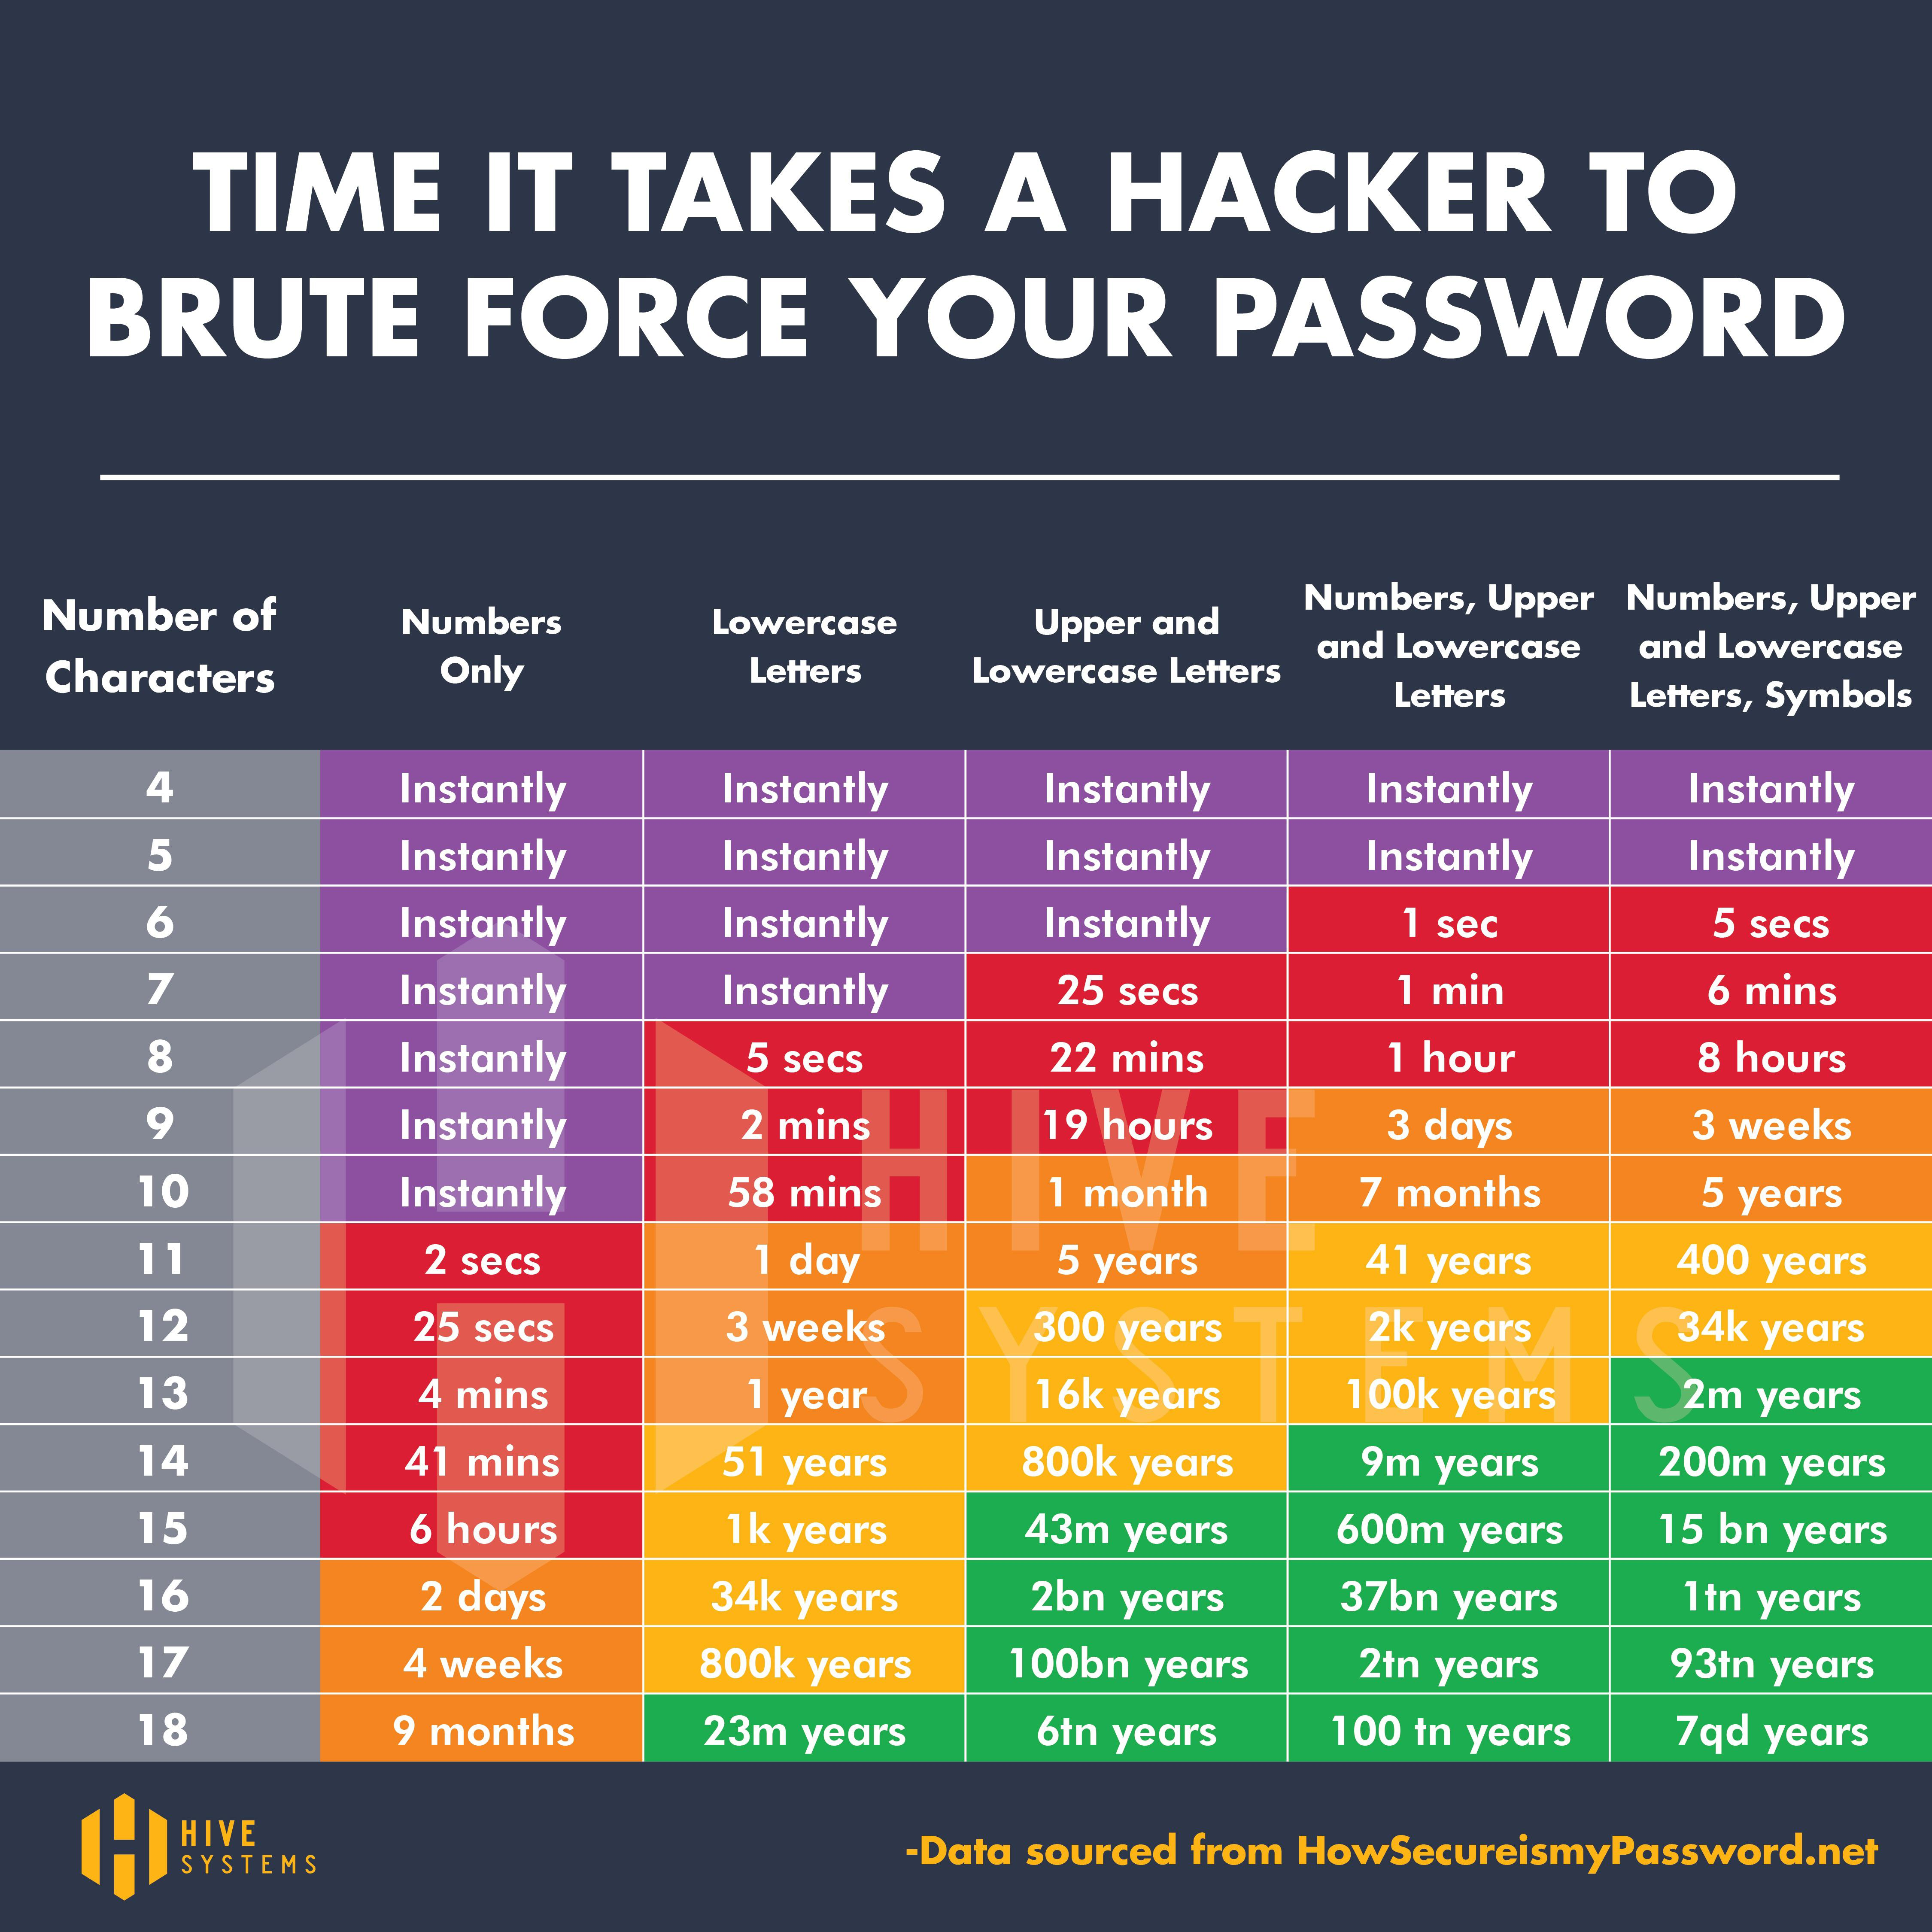 brute force password chart